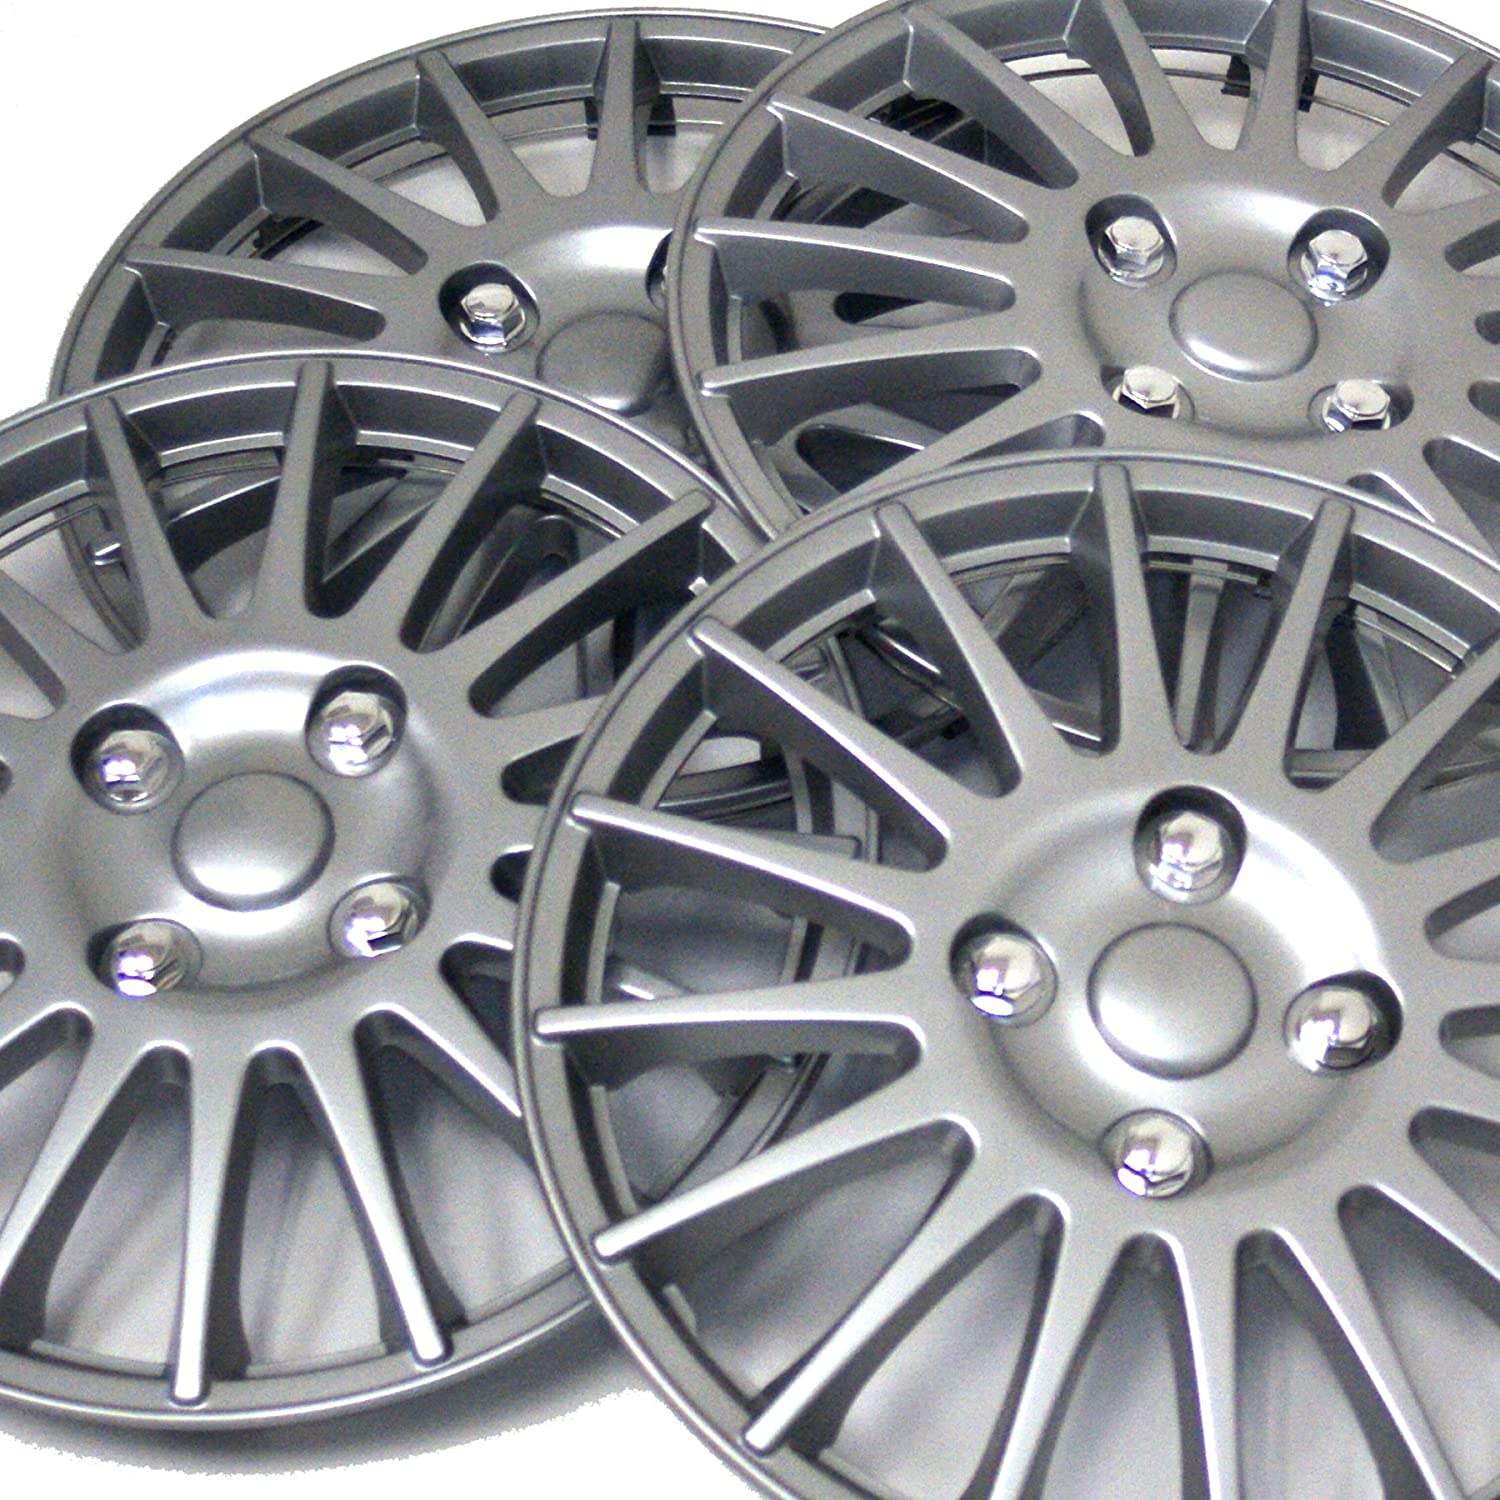 Pop-On Pack of 4 Hubcaps Type Metallic Silver Wheel Covers Hub-caps Tuningpros WC3-16-611-S 16-Inches Style 611 Snap-On